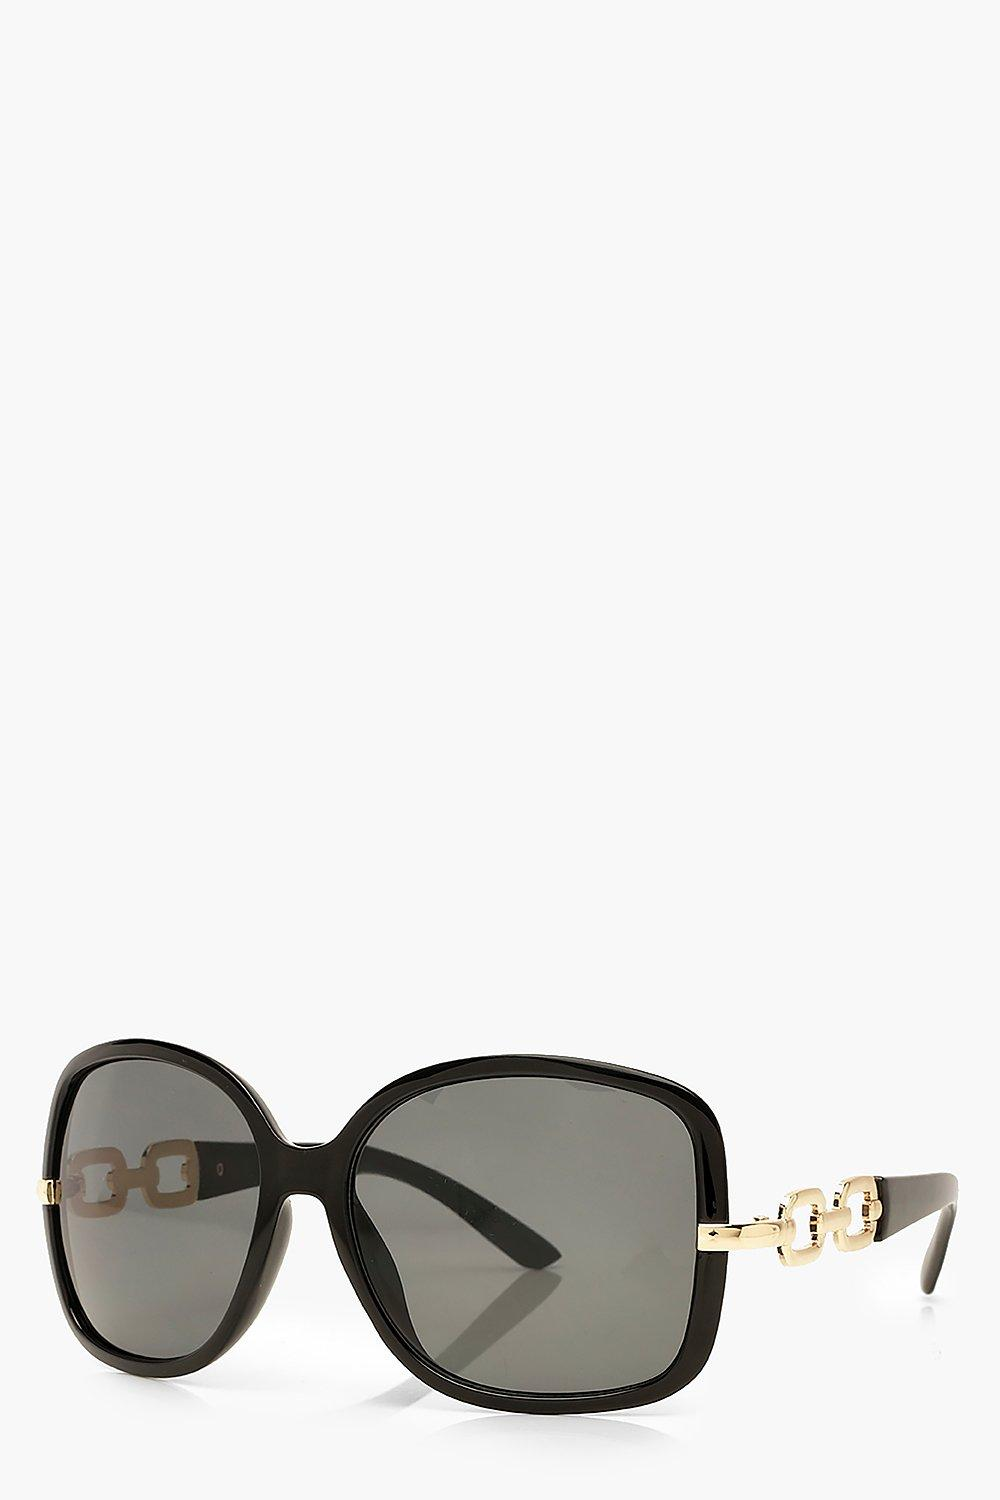 boohoo Womens Oversized Chain Detail Sunglasses - Black - One Size, Black